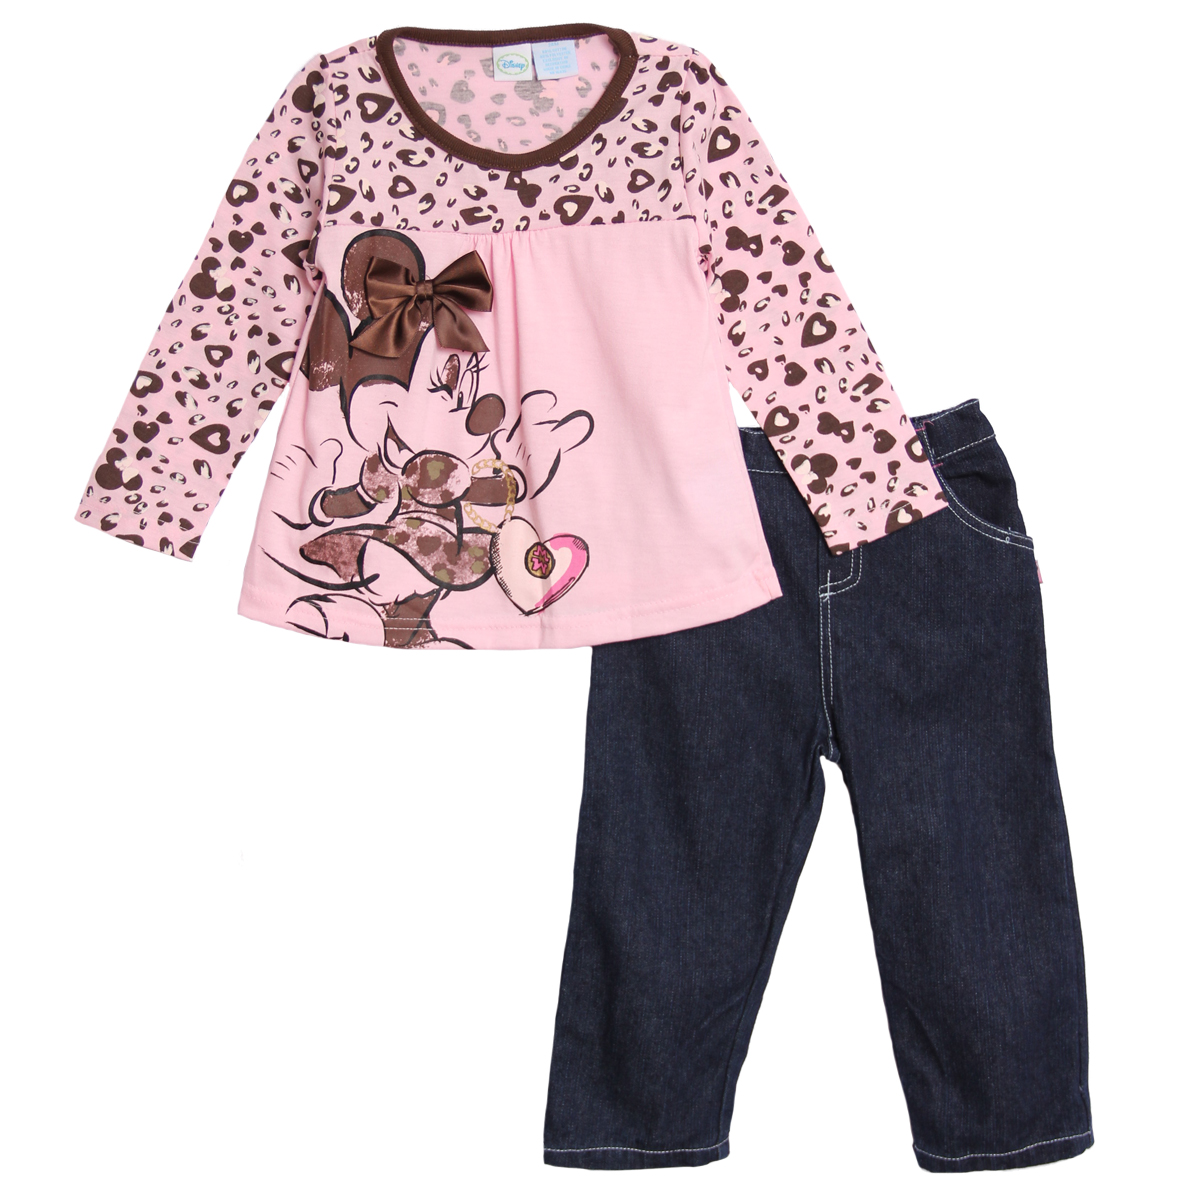 Disney Infant Baby Girls 2 Piece Pink Minnie Mouse Leopard Print Jeans Pants Set at Sears.com